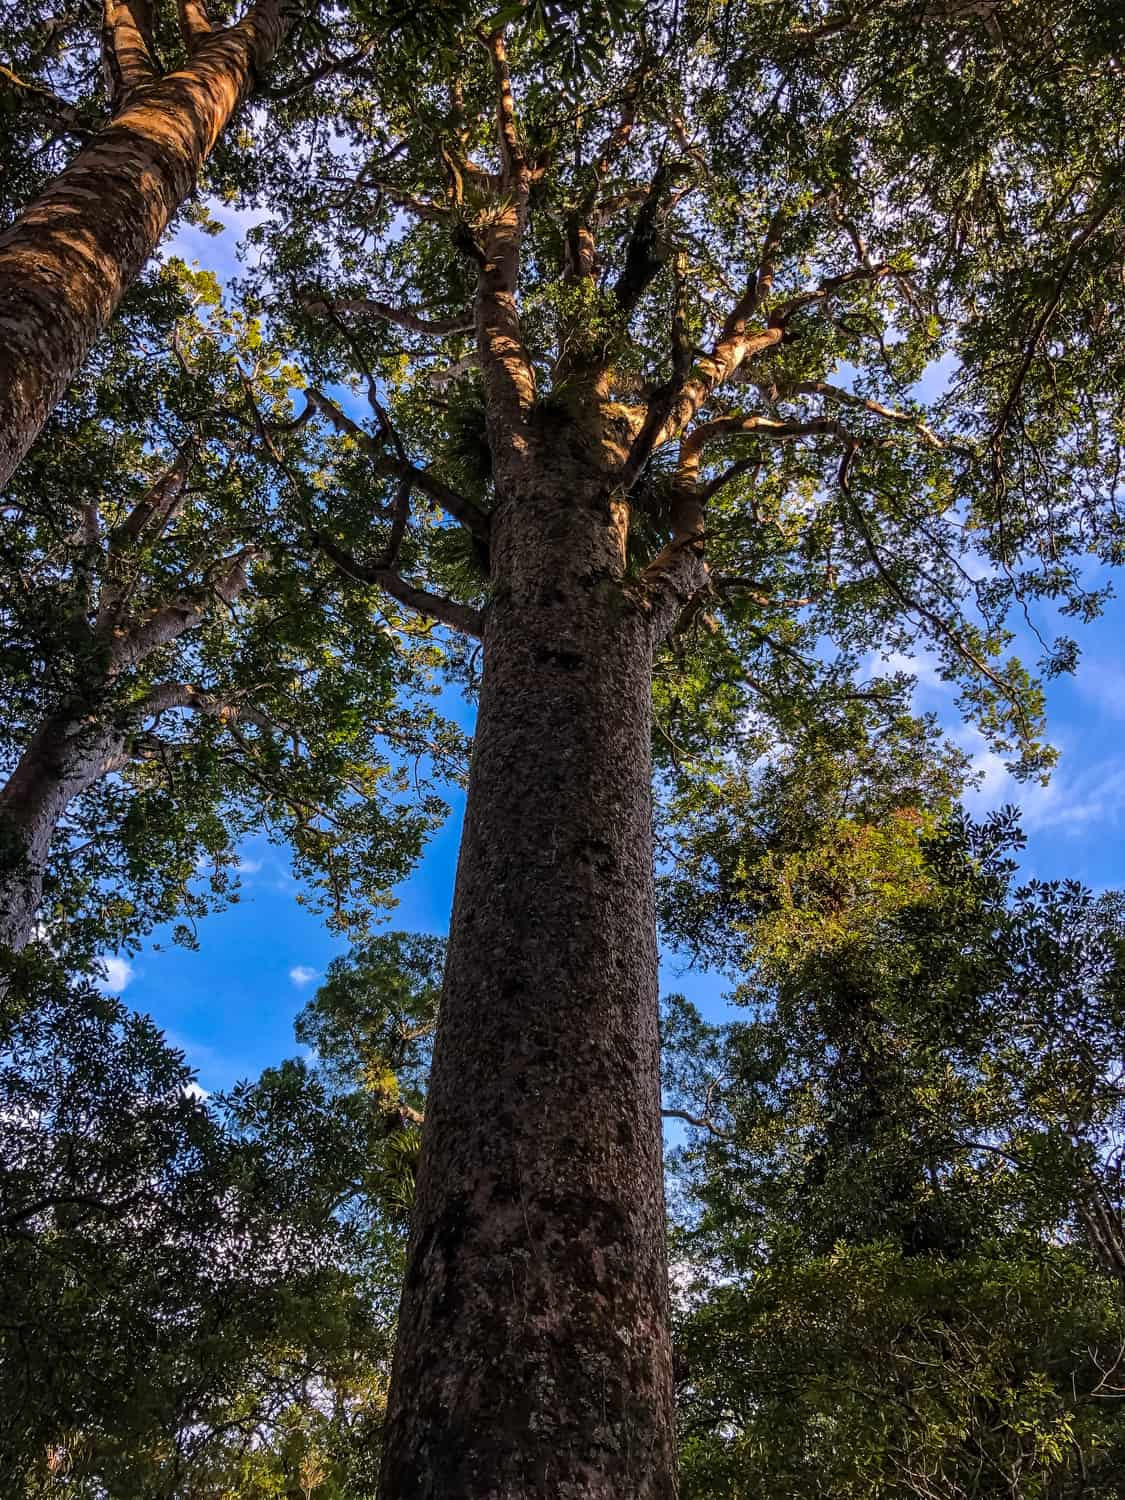 New Zealand Kauri Trees: A Tale of Dinosaurs and Giants